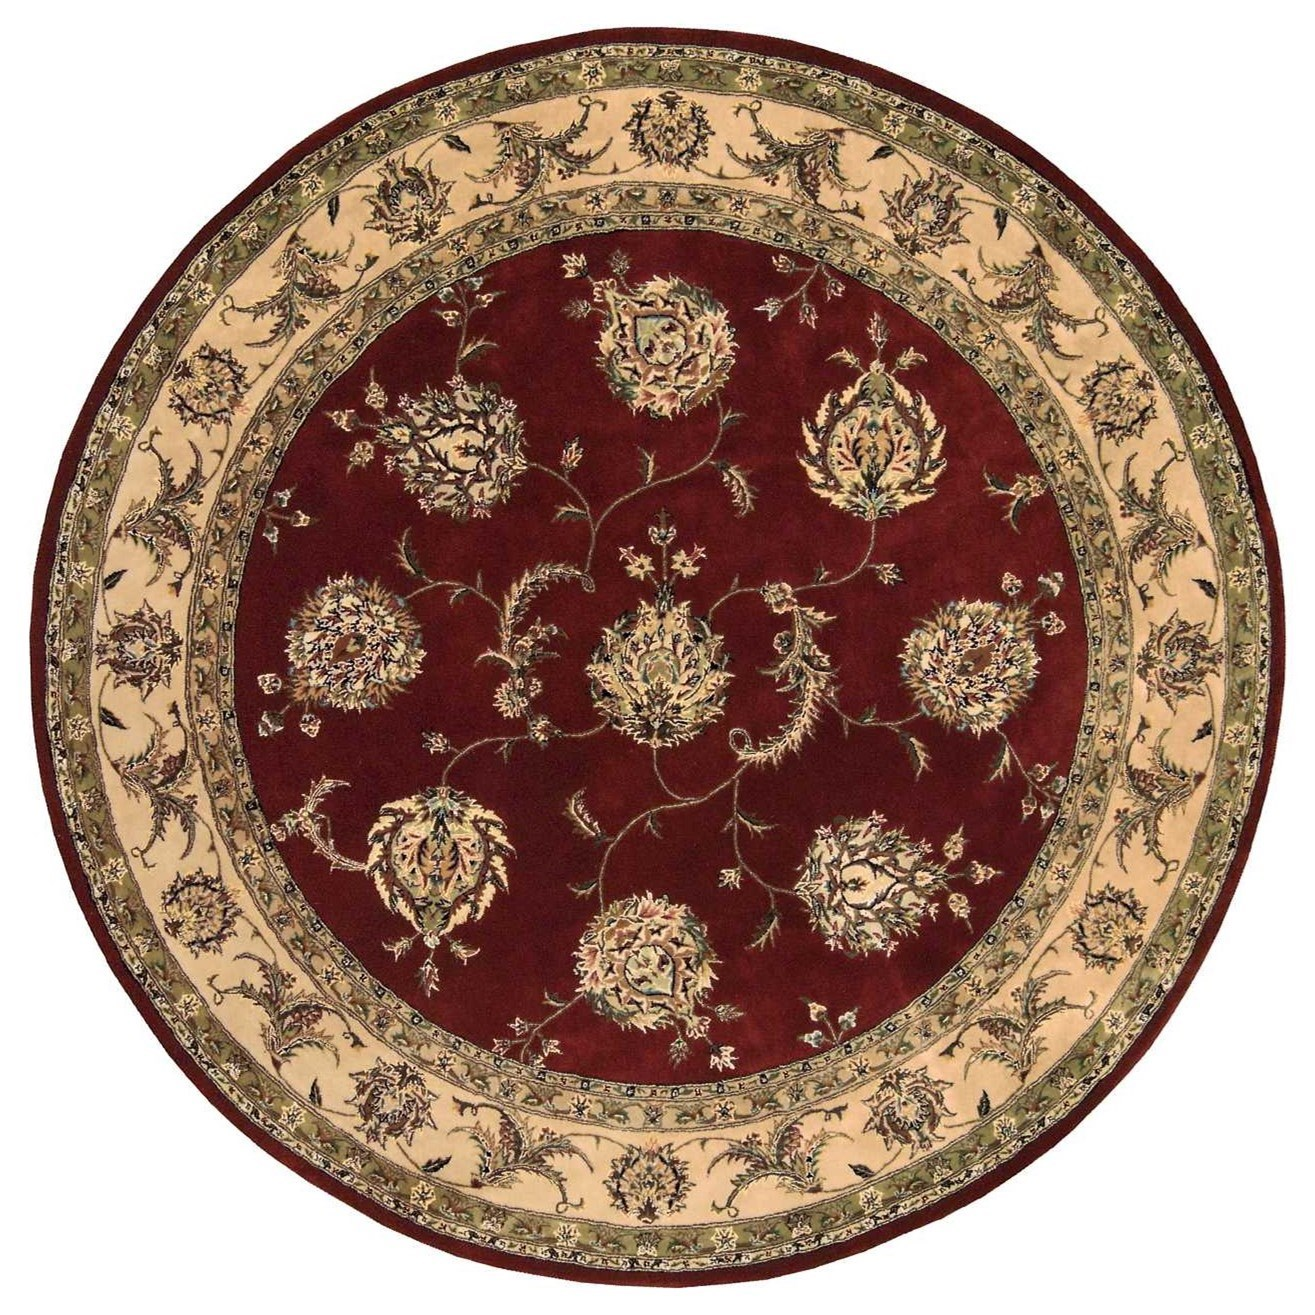 Nourison 2000 2000 2022 Lacquer 8' Round  Area Rug by Nourison at Sprintz Furniture